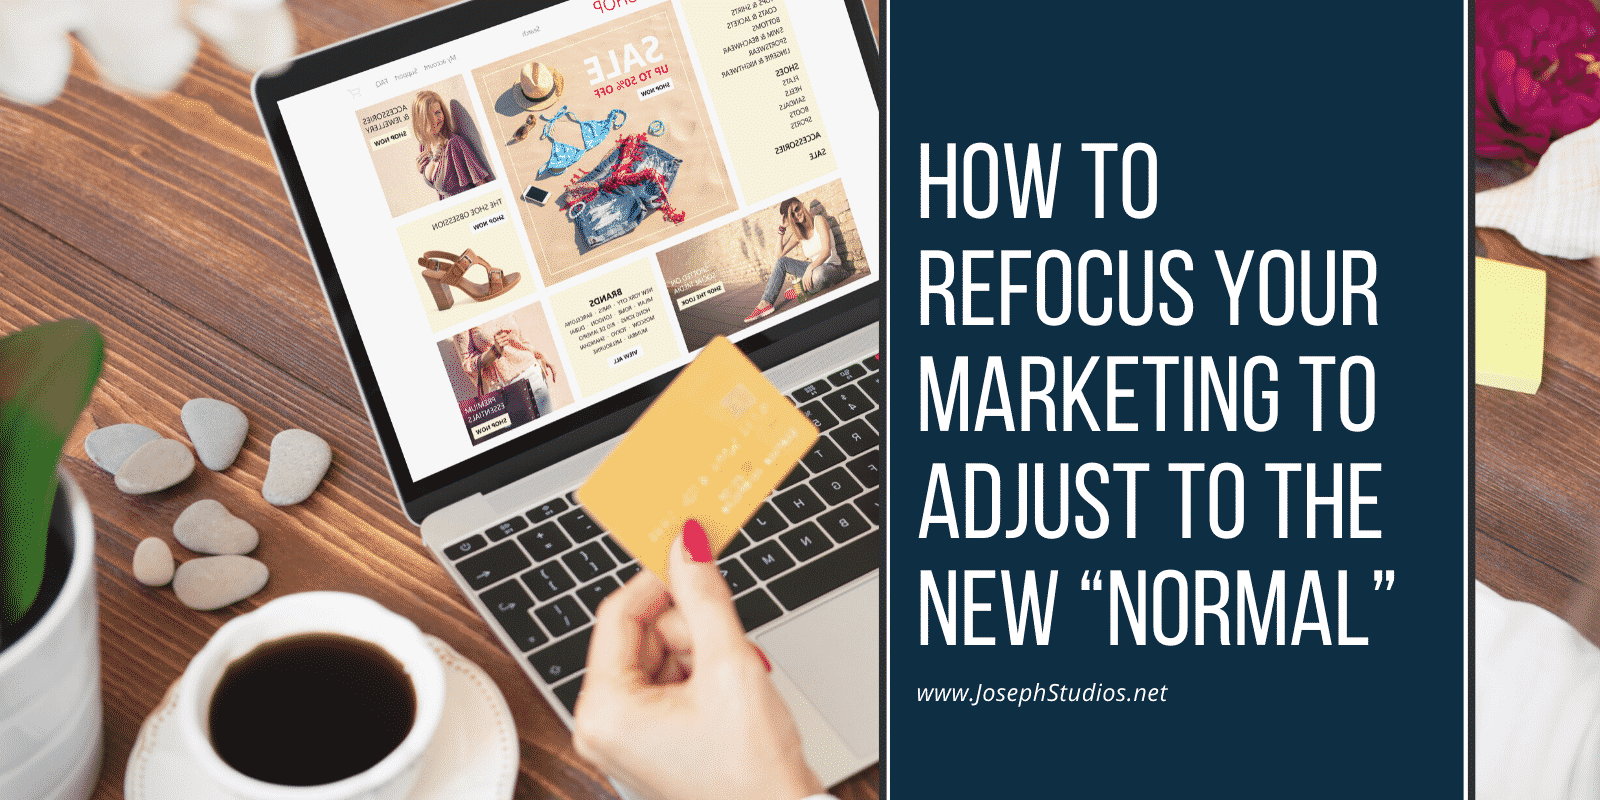 """How to Refocus Your Marketing to Adjust to The New """"Normal"""""""